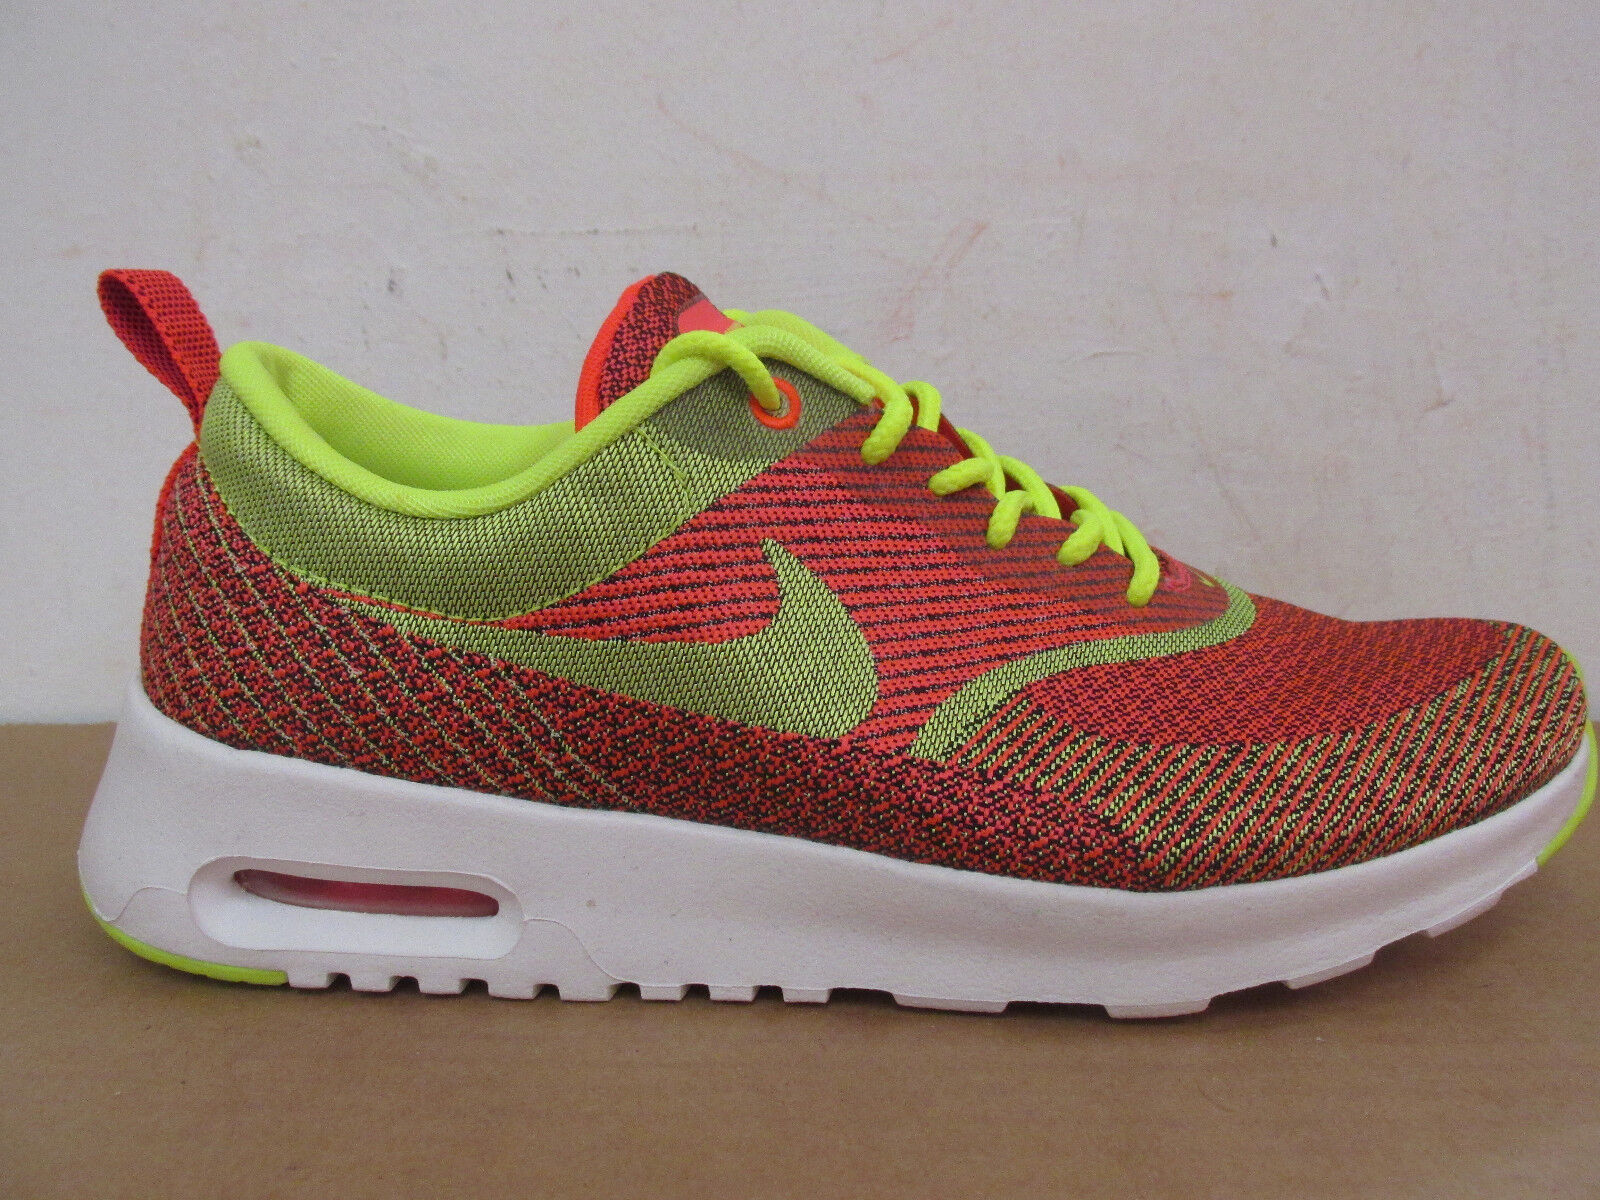 nike womens air max thea JCRD 607 QS running trainers 666545 607 JCRD sneakers CLEARANCE f2ffd5